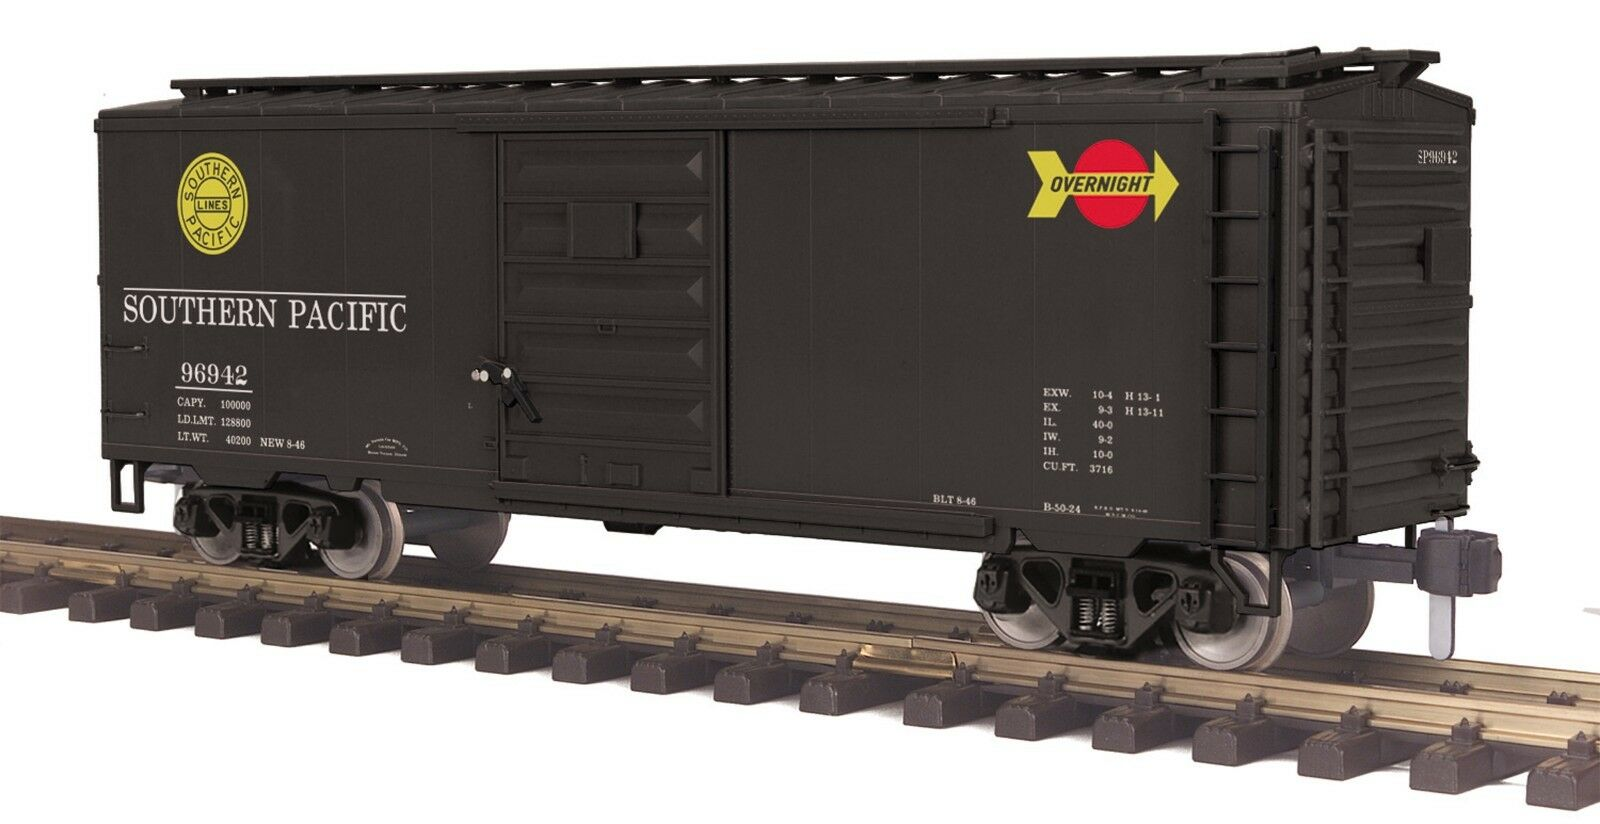 70-74100 MTH ONE-GAUGE Southern Pacific (Overnight) 40' Box Car